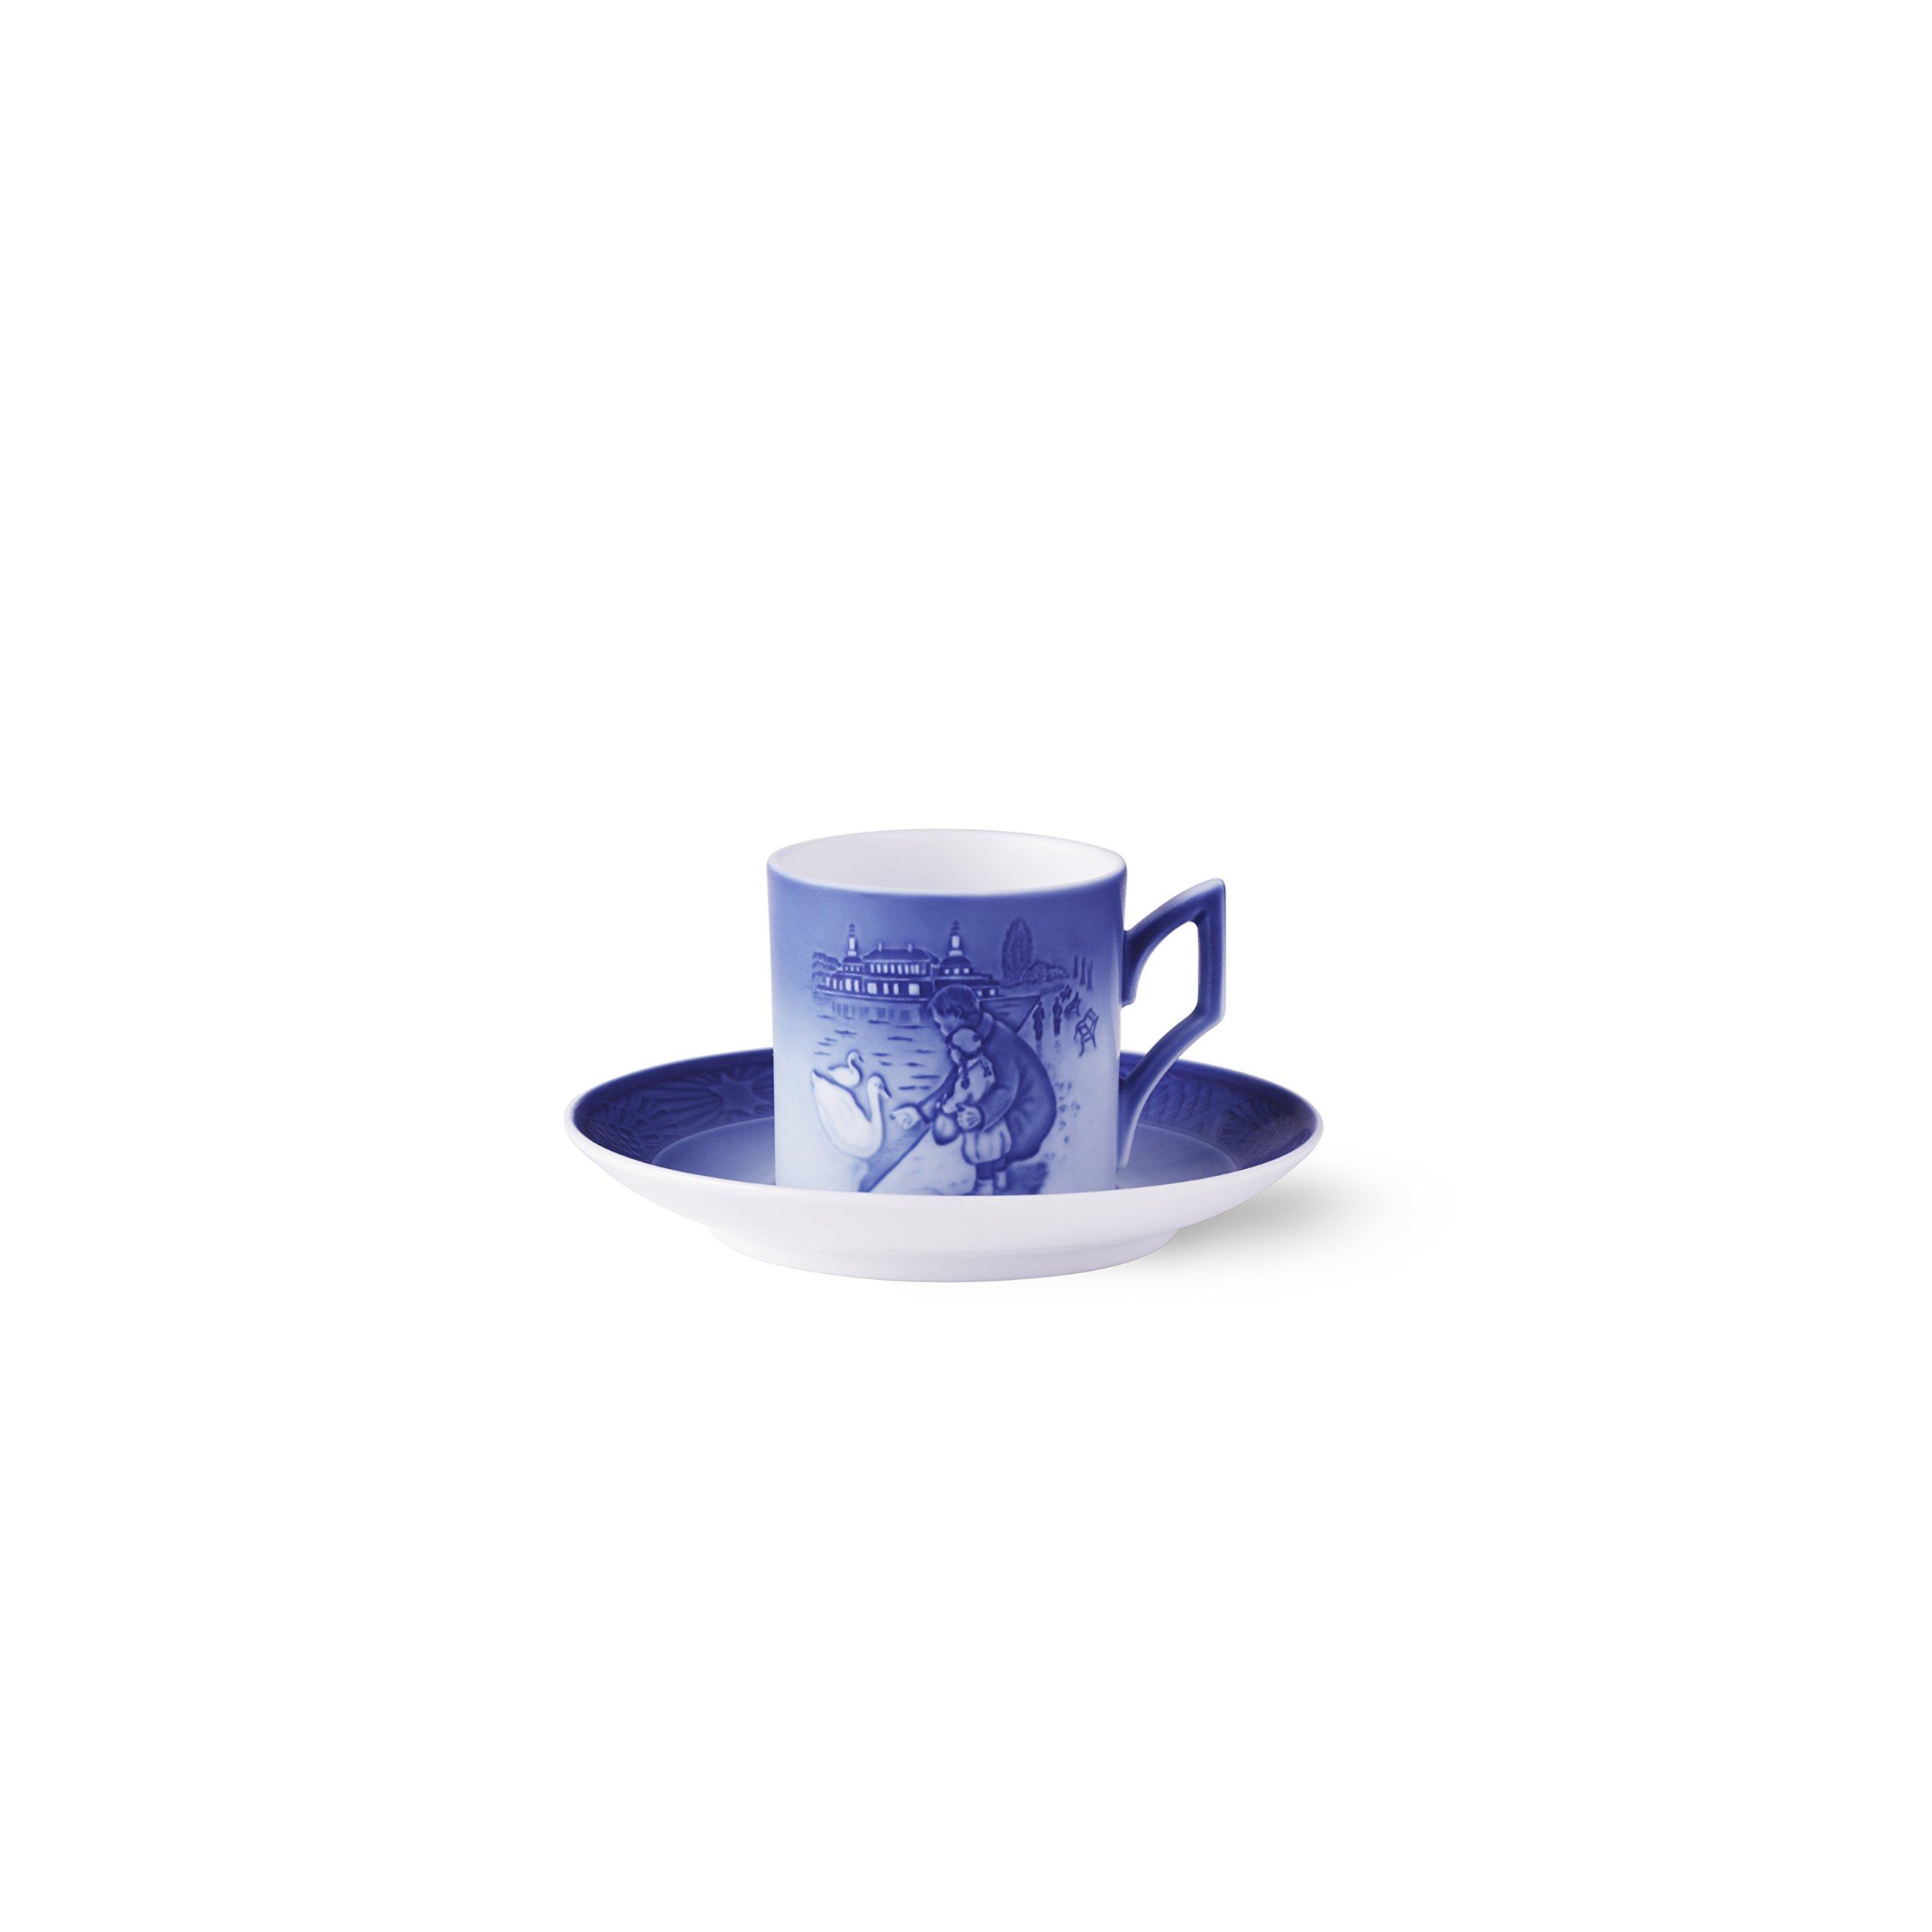 2017 Christmas Cup & Saucer by Royal Copenhagen